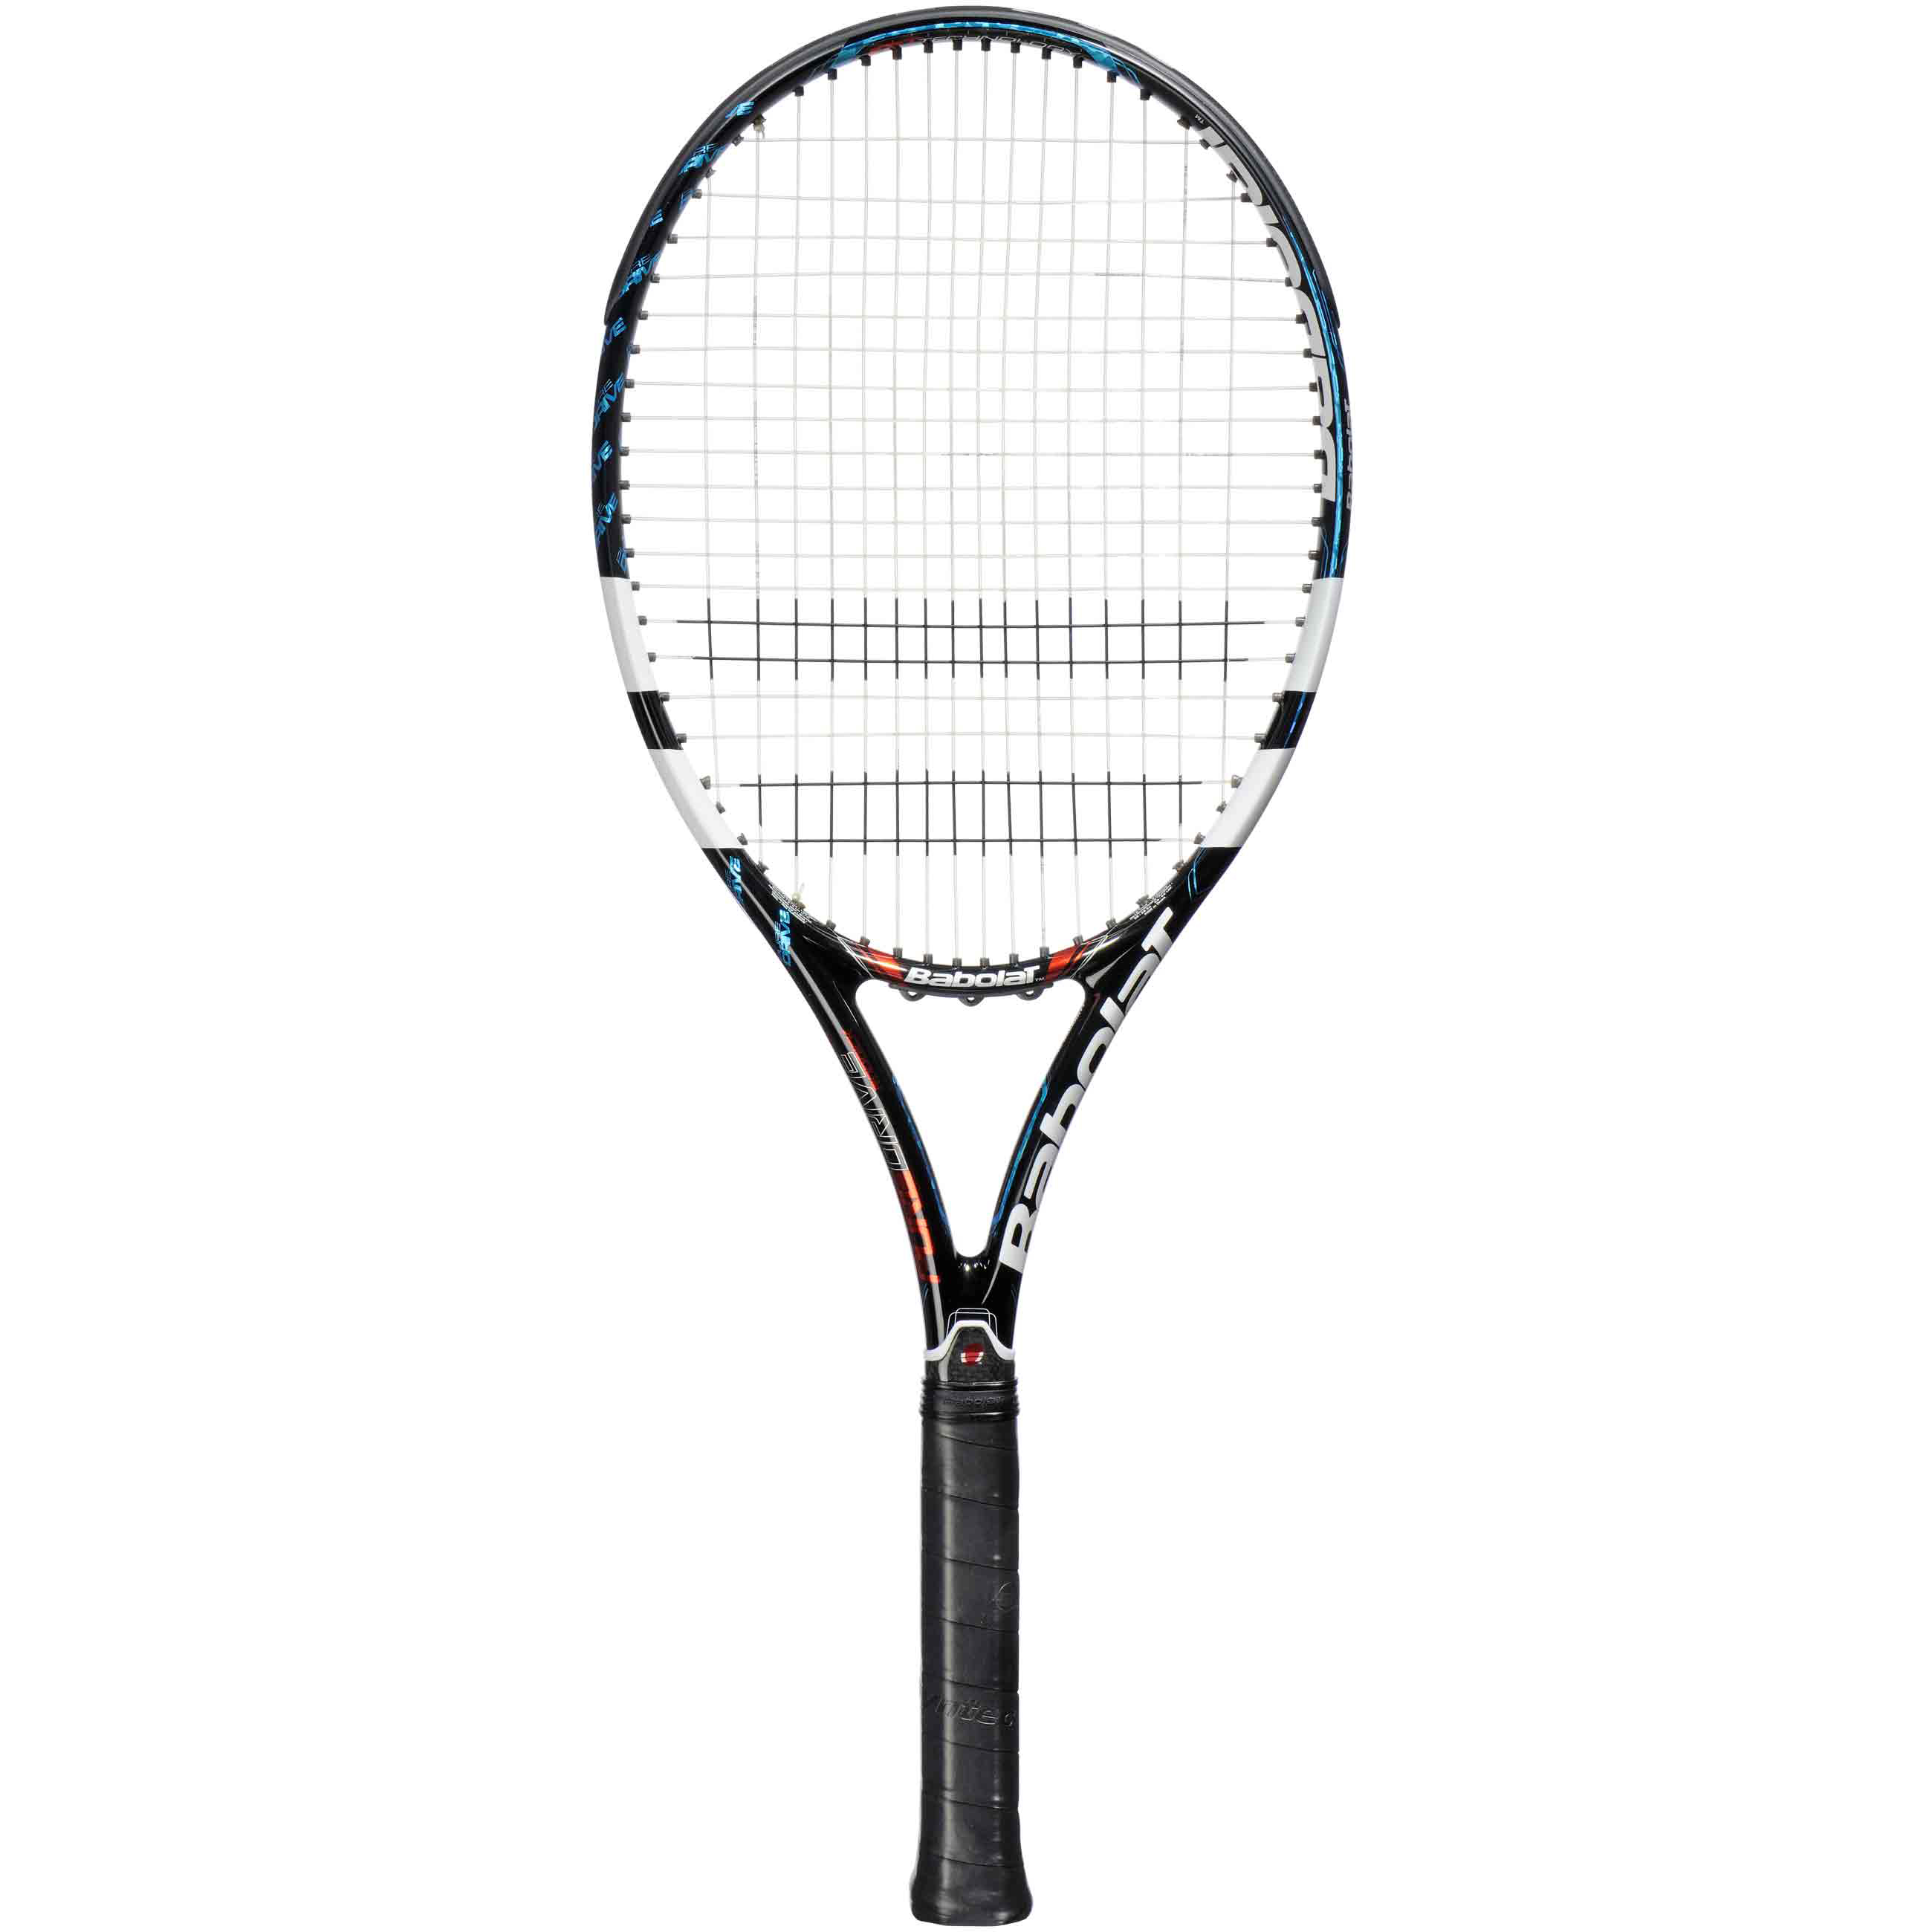 Free Tennis Racket Download Free Clip Art Free Clip Art On Clipart Library